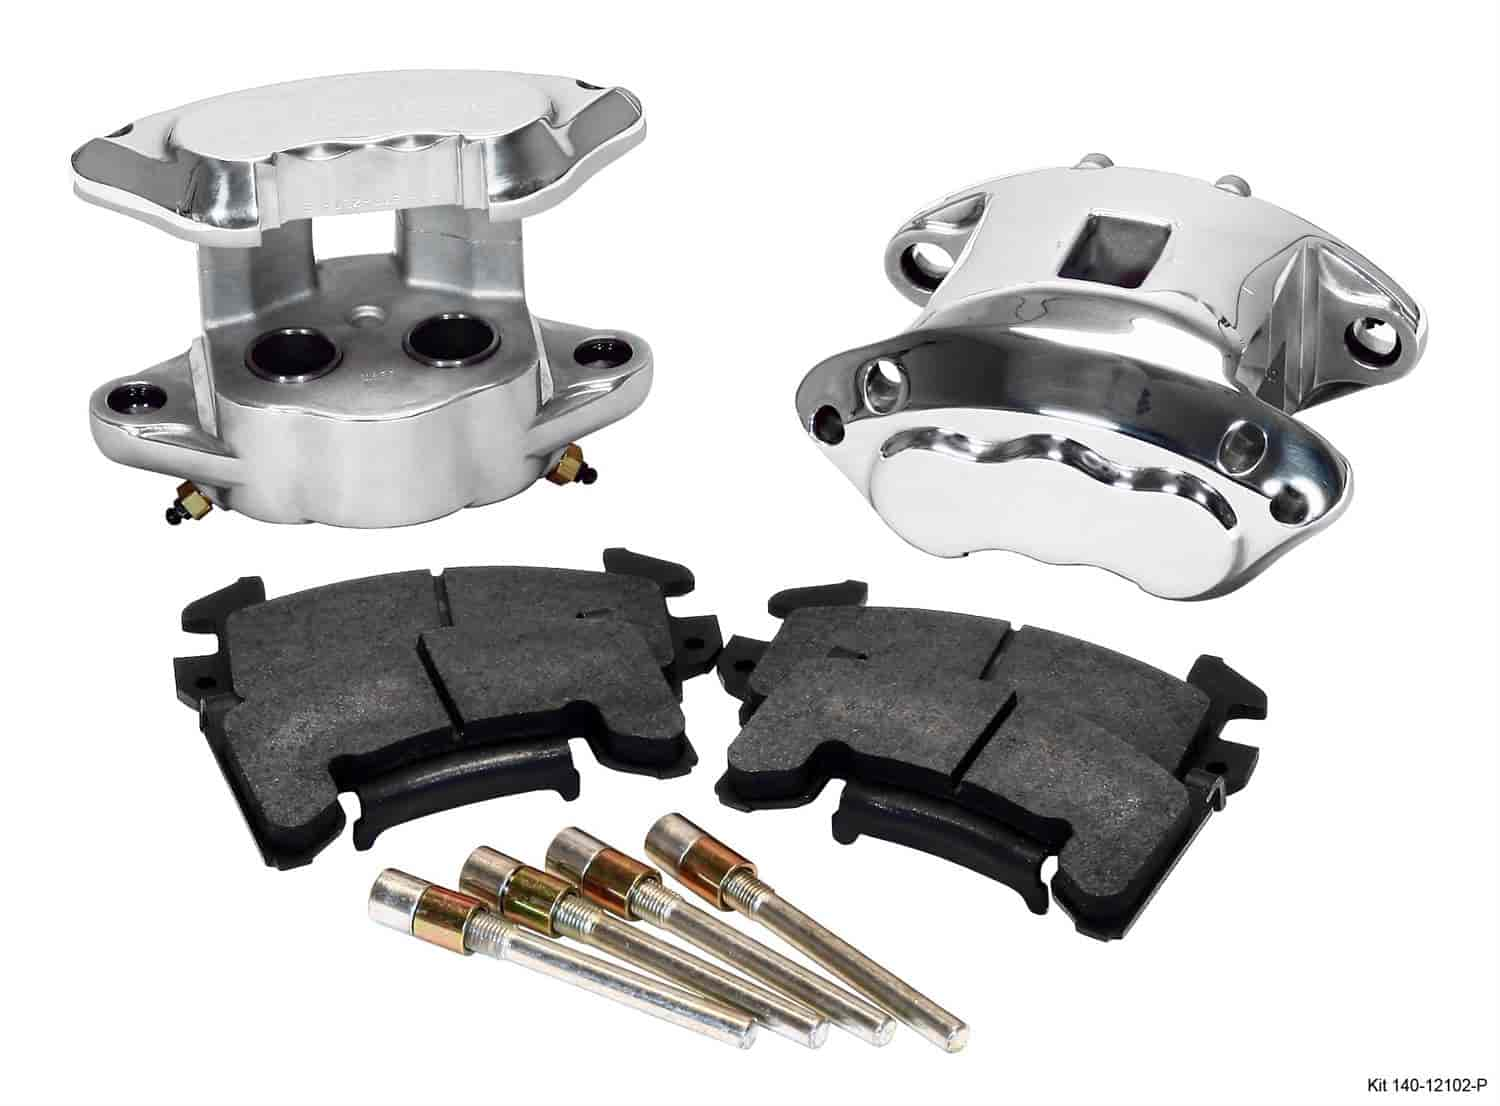 Wilwood 140-12102-P - Wilwood D154 Rear Caliper Kits